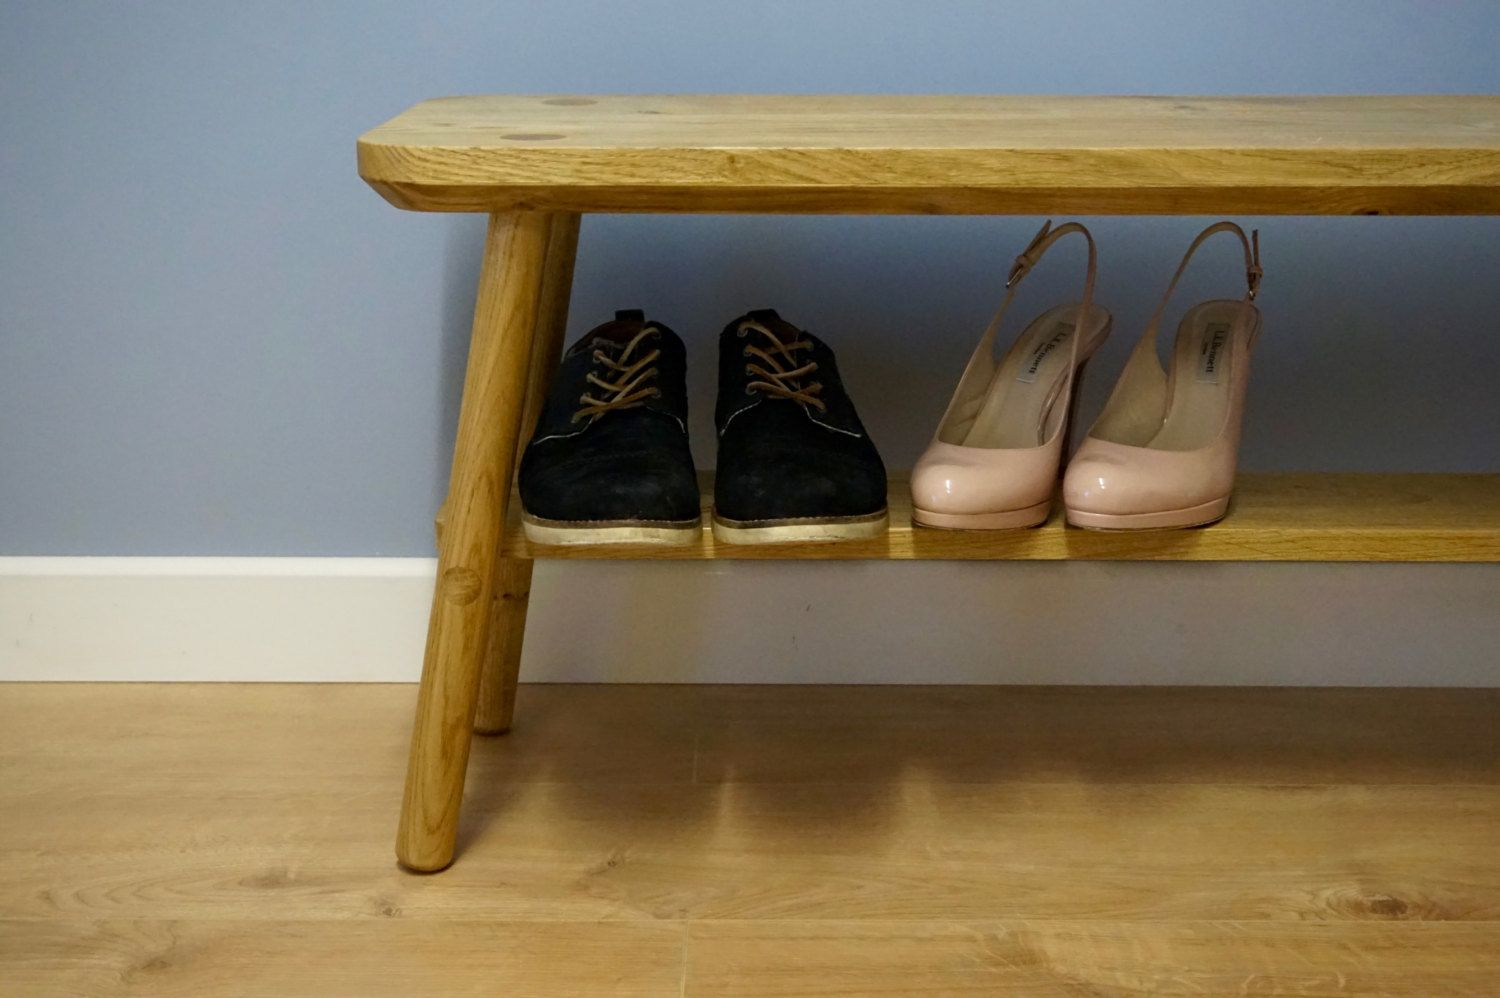 Made entirely from Oak, this bench is hand crafted using wedge joinery. Visible from the seat top and on the legs, the wedges are left showing to highlight the craftsmanship involved in constructing this bench.  Another key design feature is the simple shelf below the seat. http://jgriffindesign.co.uk/